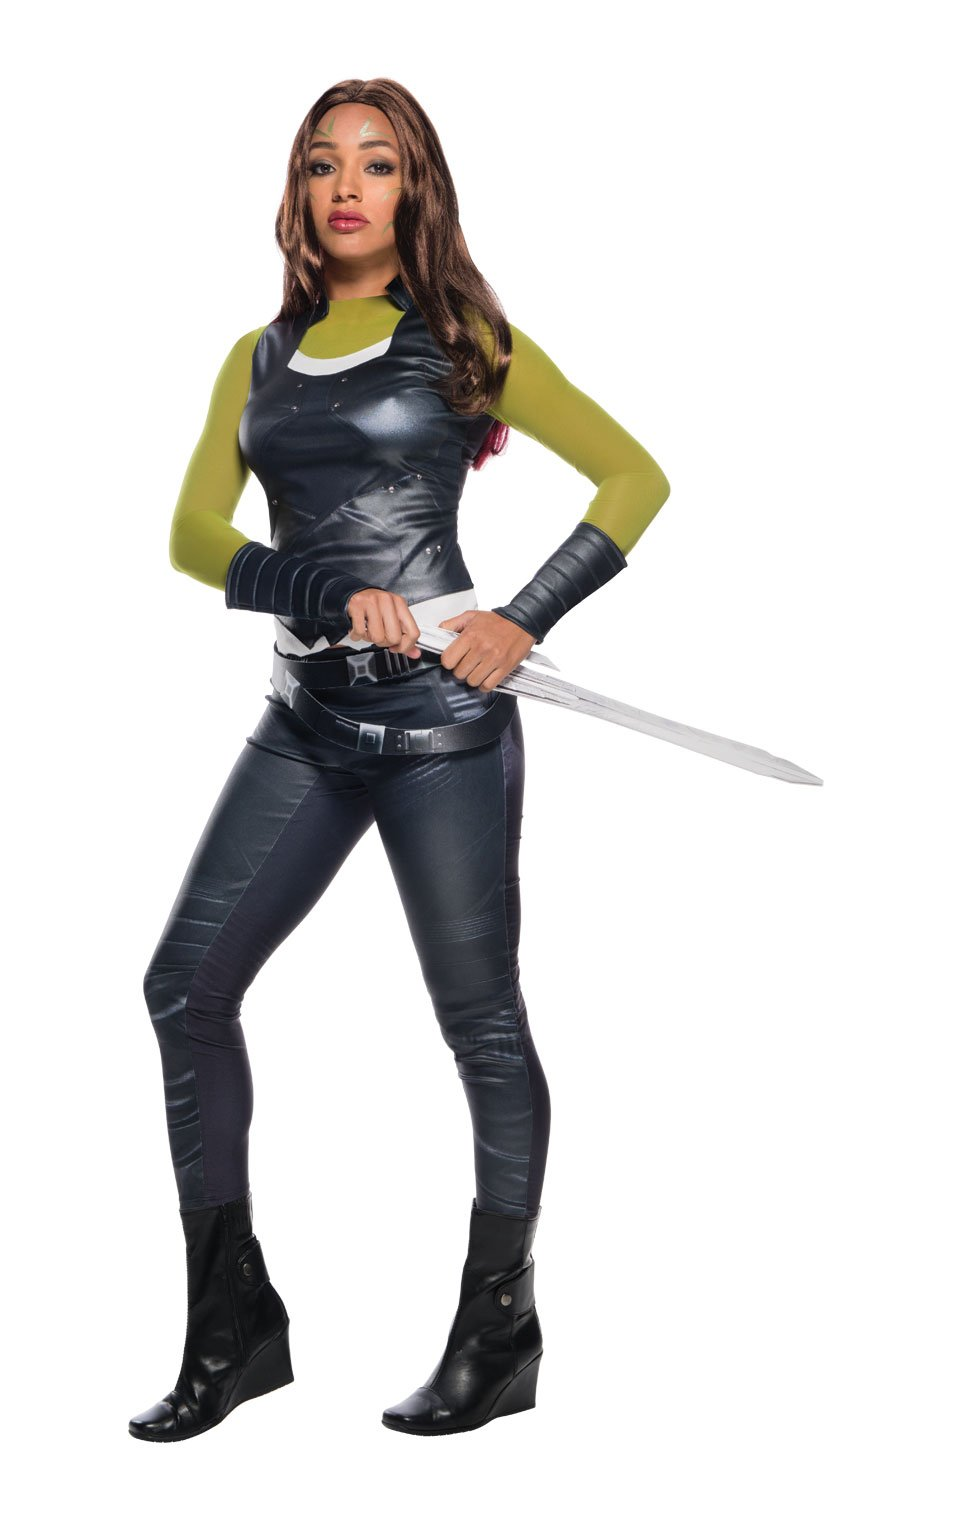 Rubie's Women's Guardians of the Galaxy Gamora Costume, As Shown, Small by Rubie's